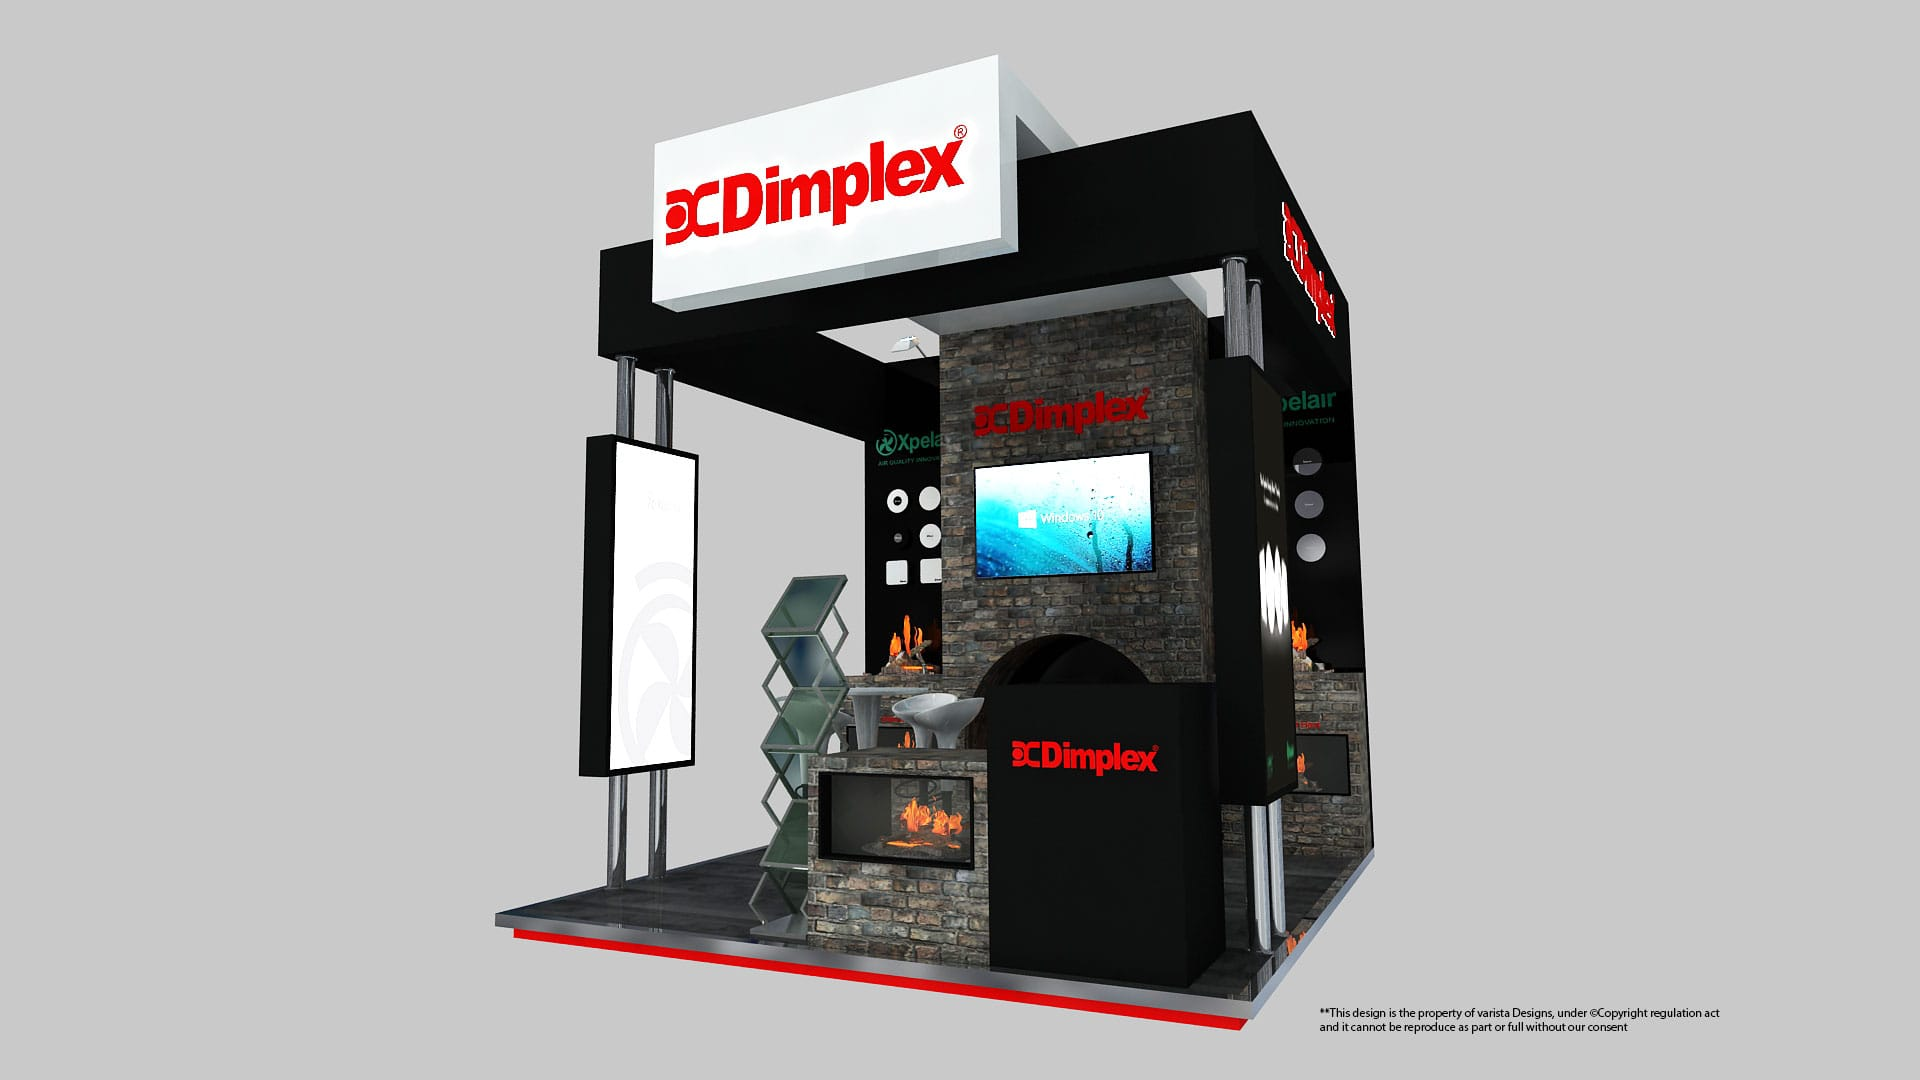 Dimplex exhibition stand designs at middle east covering